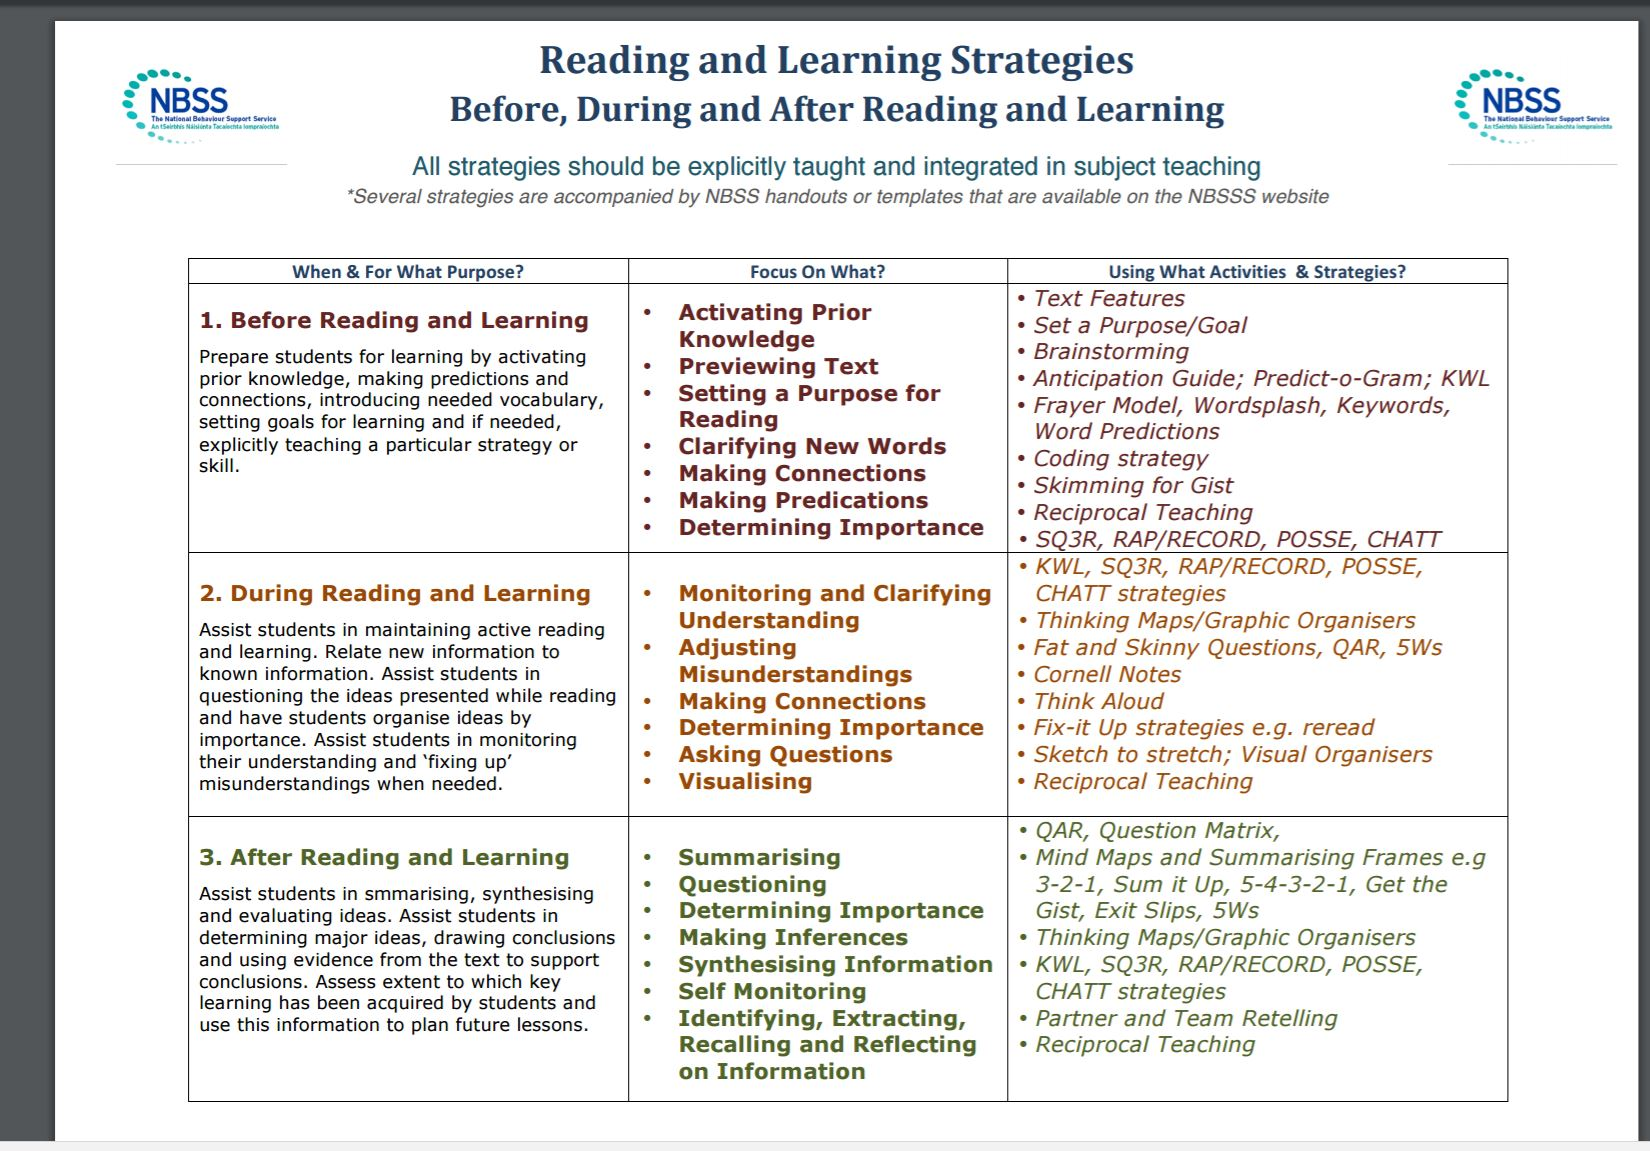 worksheet Reciprocal Teaching Worksheet english resources reading junior cycle for teachers jct www nbss ie